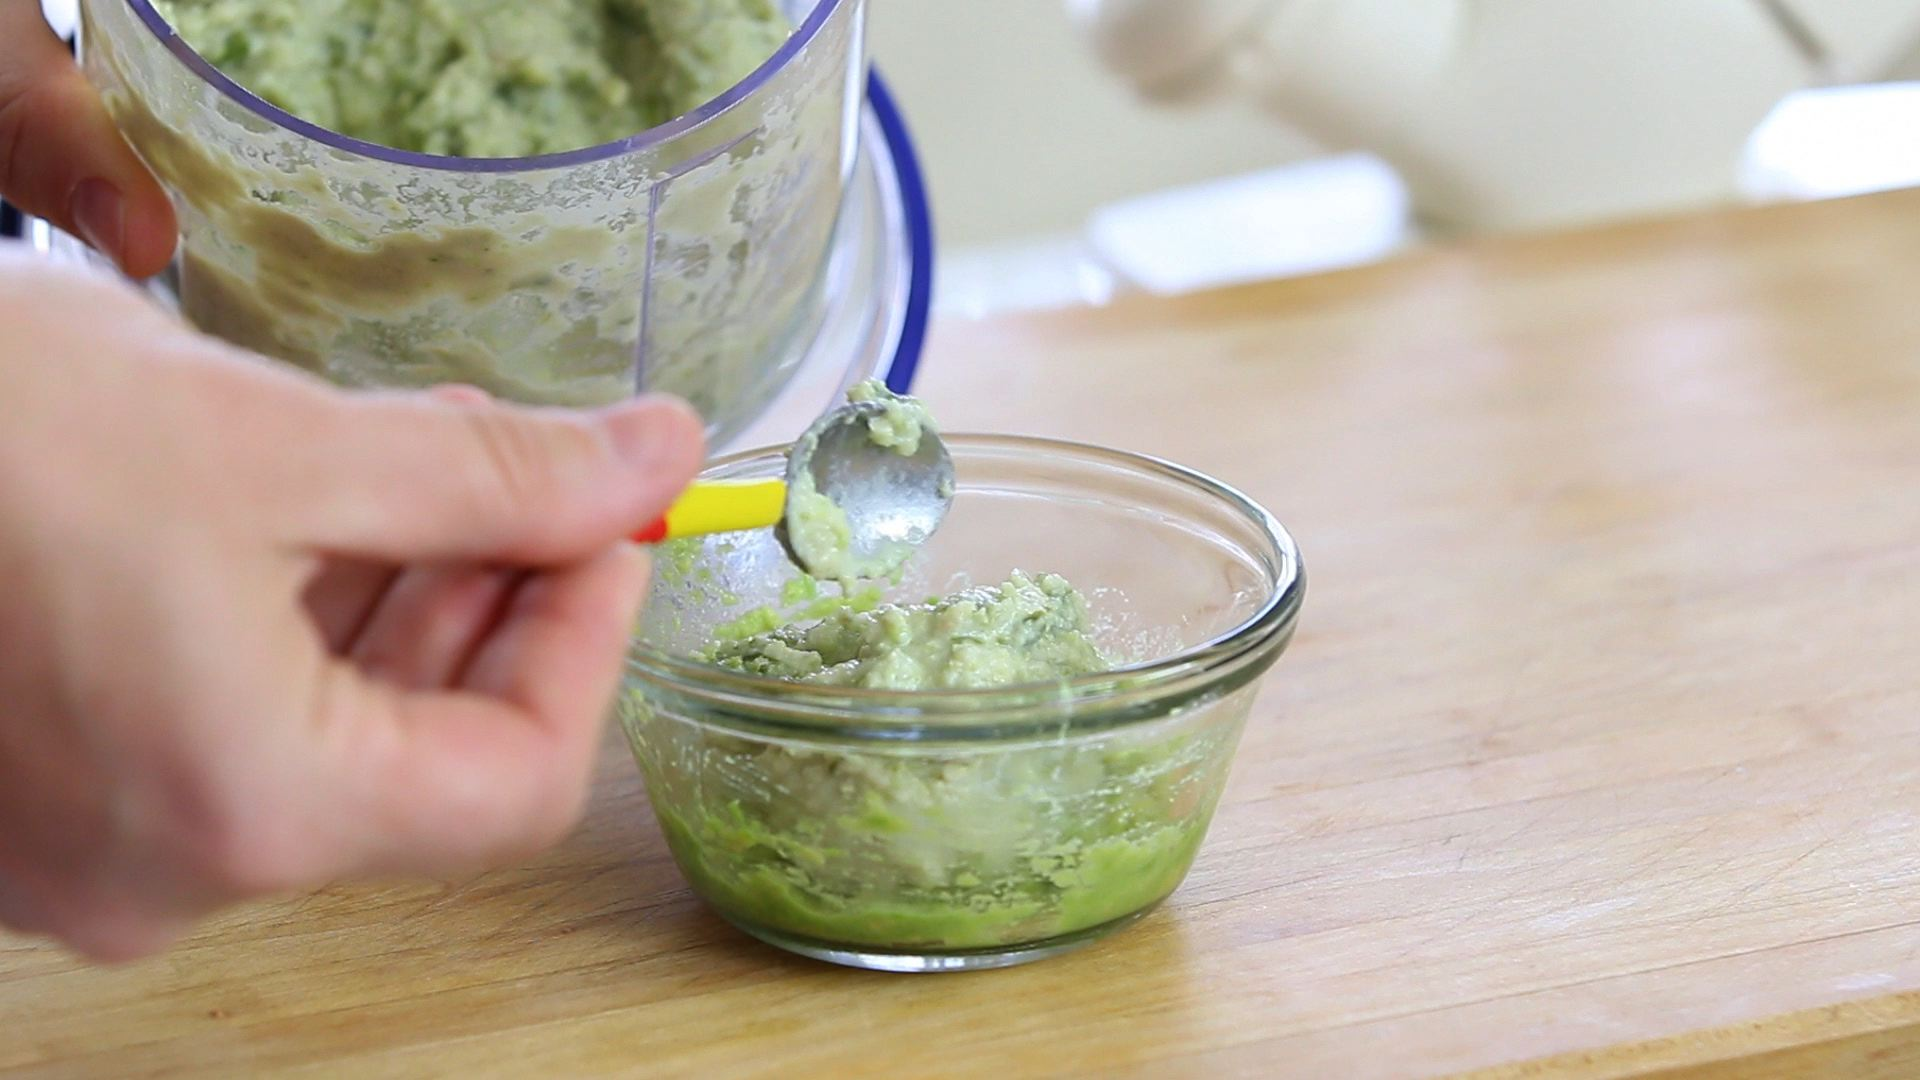 Green beans chicken and avocado baby food   Buona Pappa - photo#13